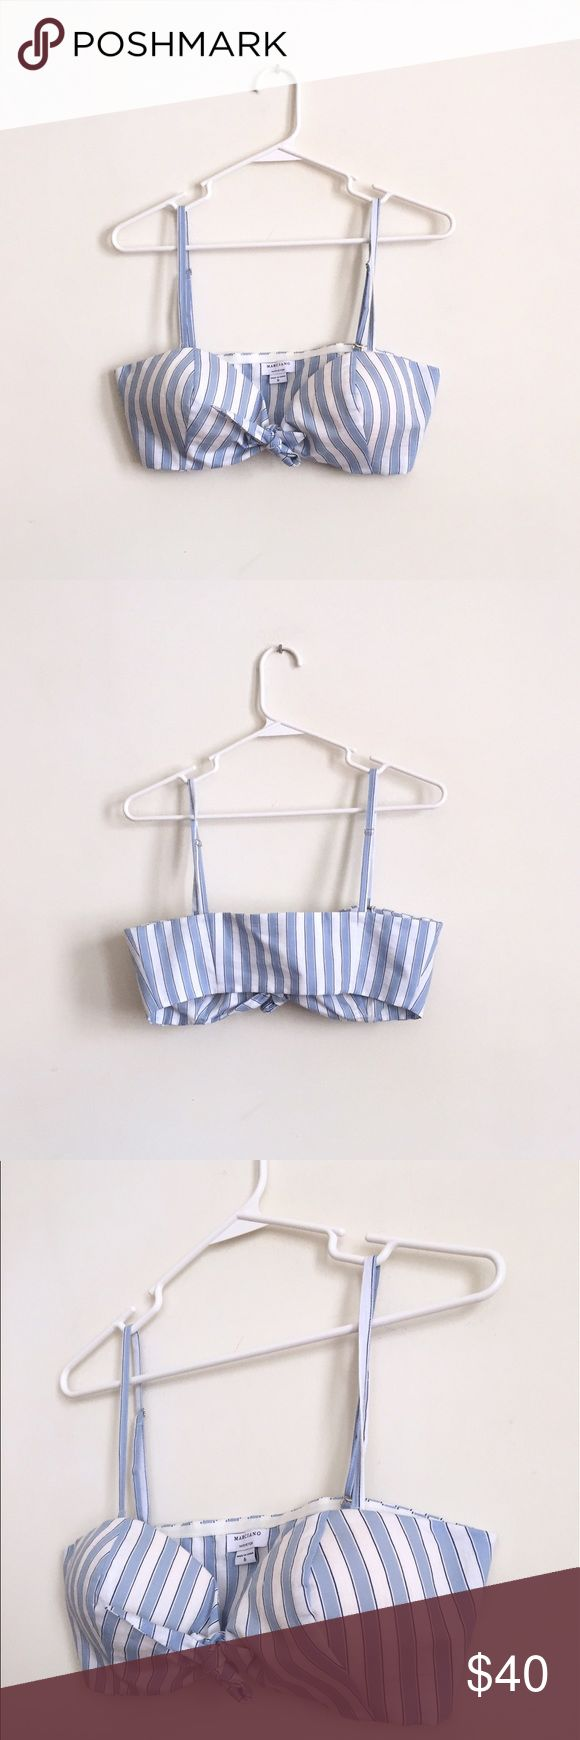 Marciano Native Fox Striped Vintage Style Bustier So adorable! This bustier/crop top channels all of our favorite vintage looks from the 60s. Striped blue and white top with mini dark blue pinstripes and a tie front, that actually opens and actually ties. Cup inserts for extra support that cannot be removed, unless of course you cut them out. Removable straps with rubber lining in back for support. Size 6, fits true to size. Probably a cotton/polyester blend. Could also be worn as a bra…